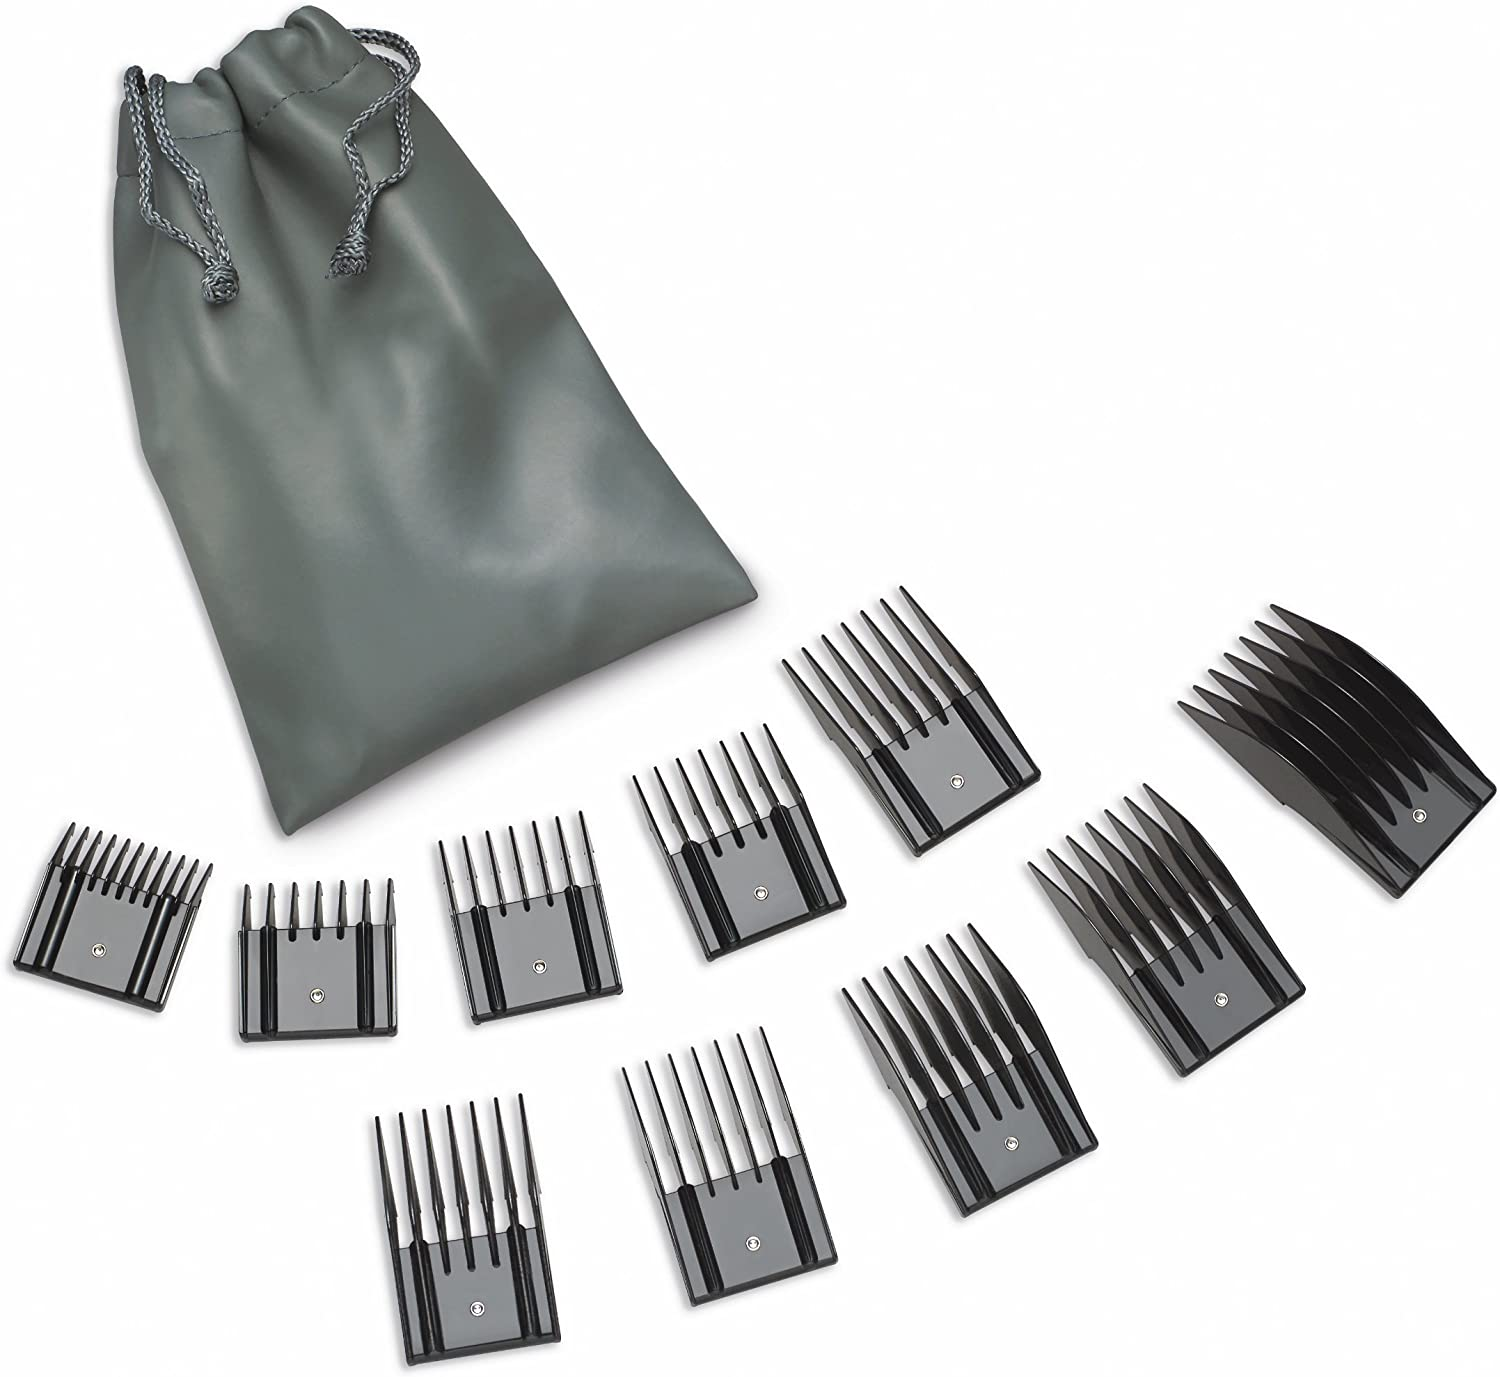 Oster A5 Universal Comb Attachment Set, 10-Piece Set (078900-600-000)